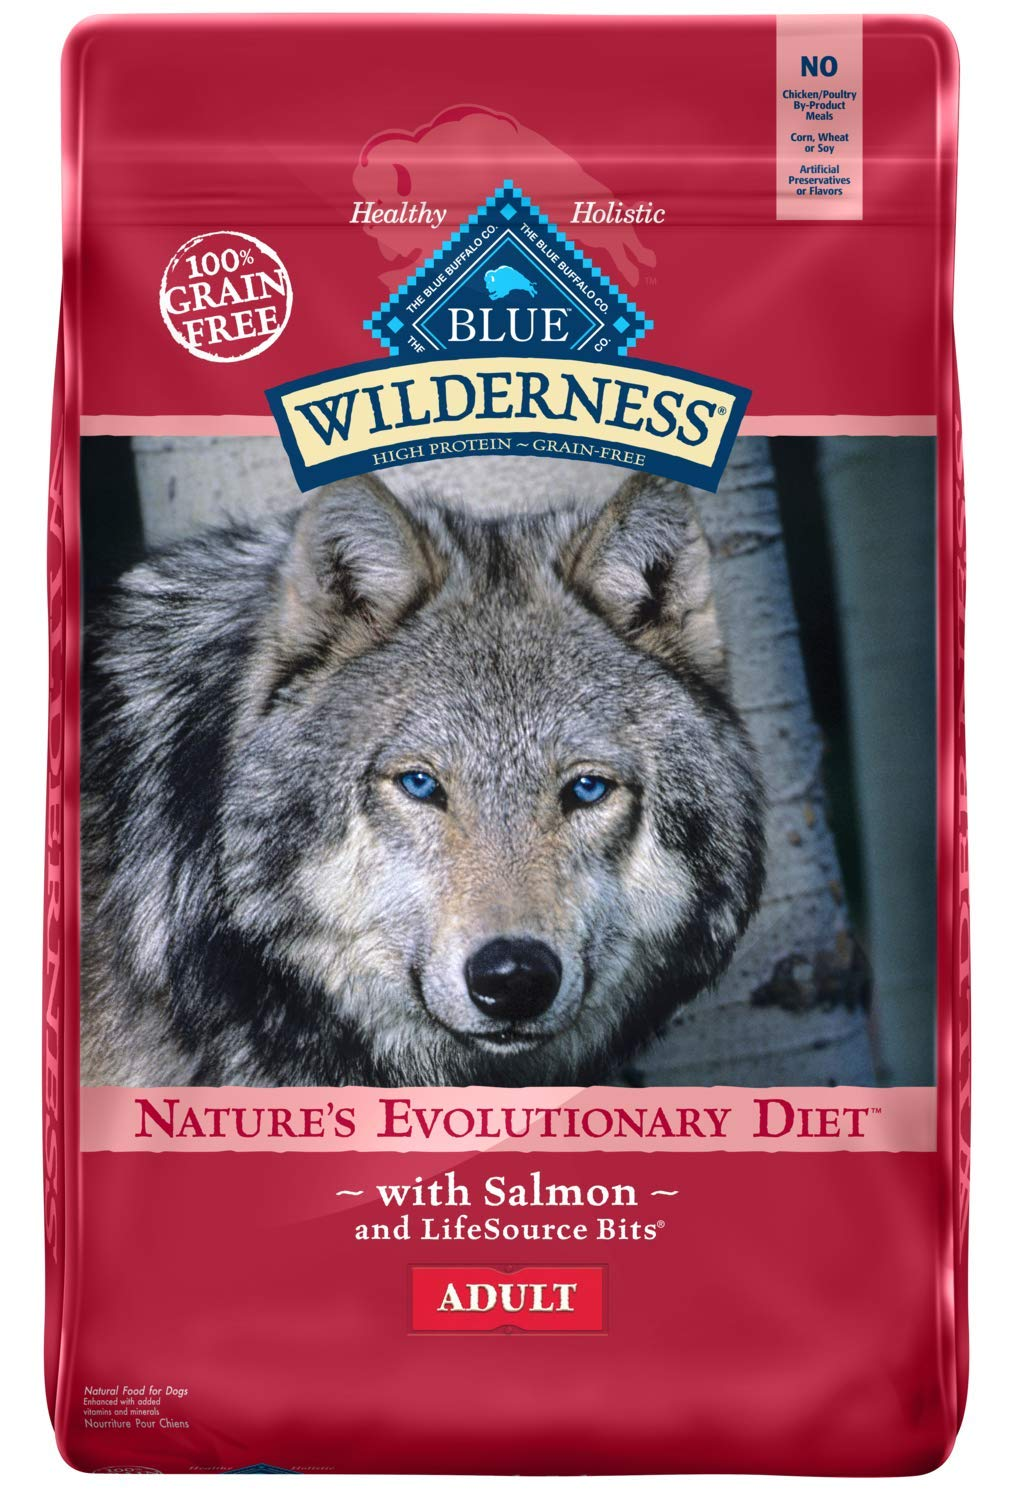 Blue Wilderness High Protein Grain Free Adult Dry Dog Food